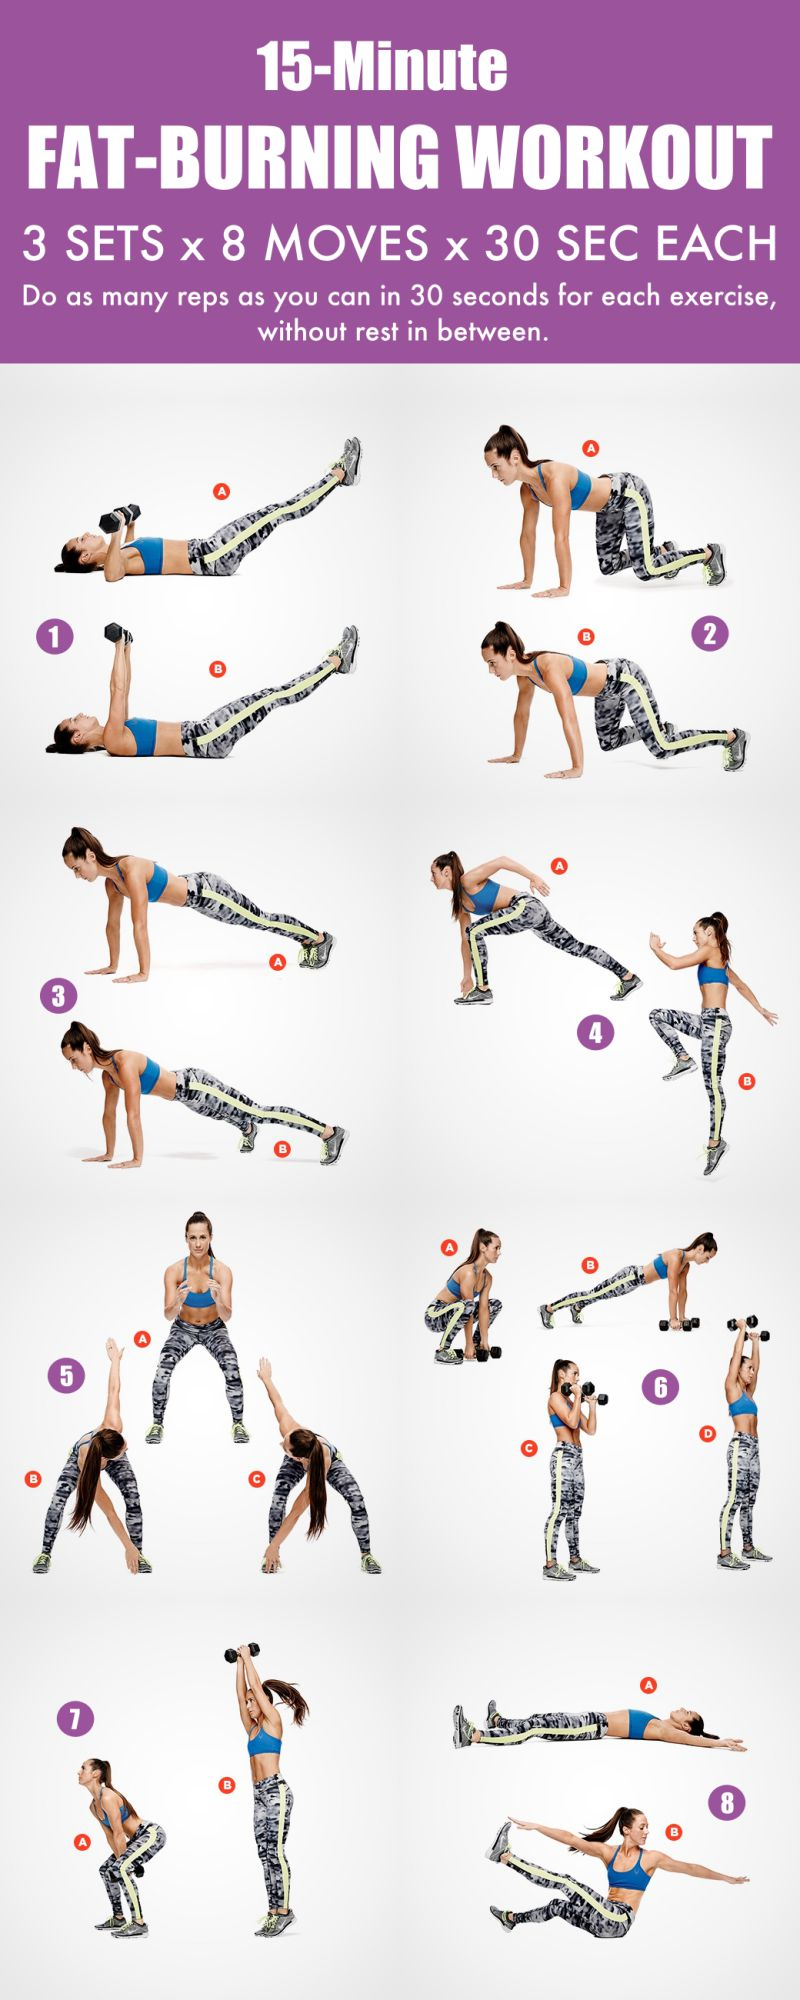 15-Minute Total Fat-Burning Workout Routine